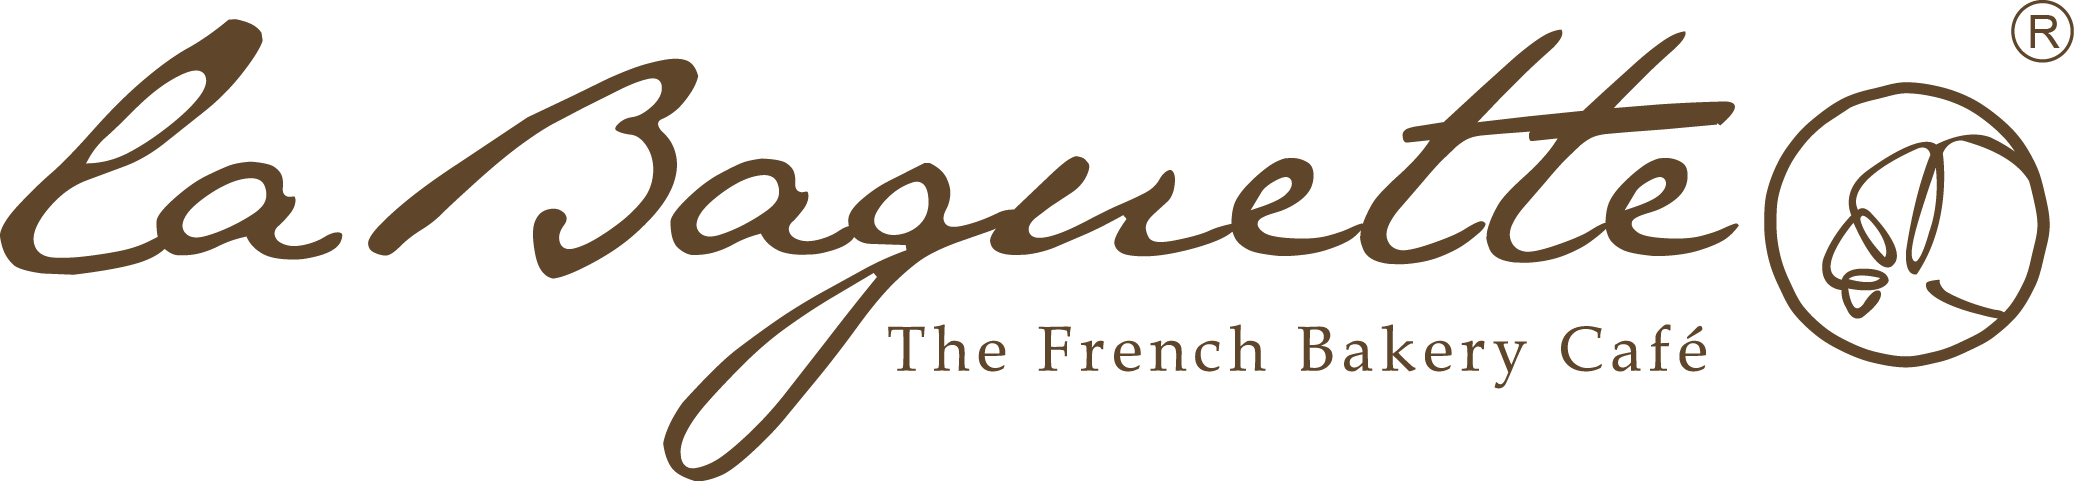 La Baguette - The French Bakery